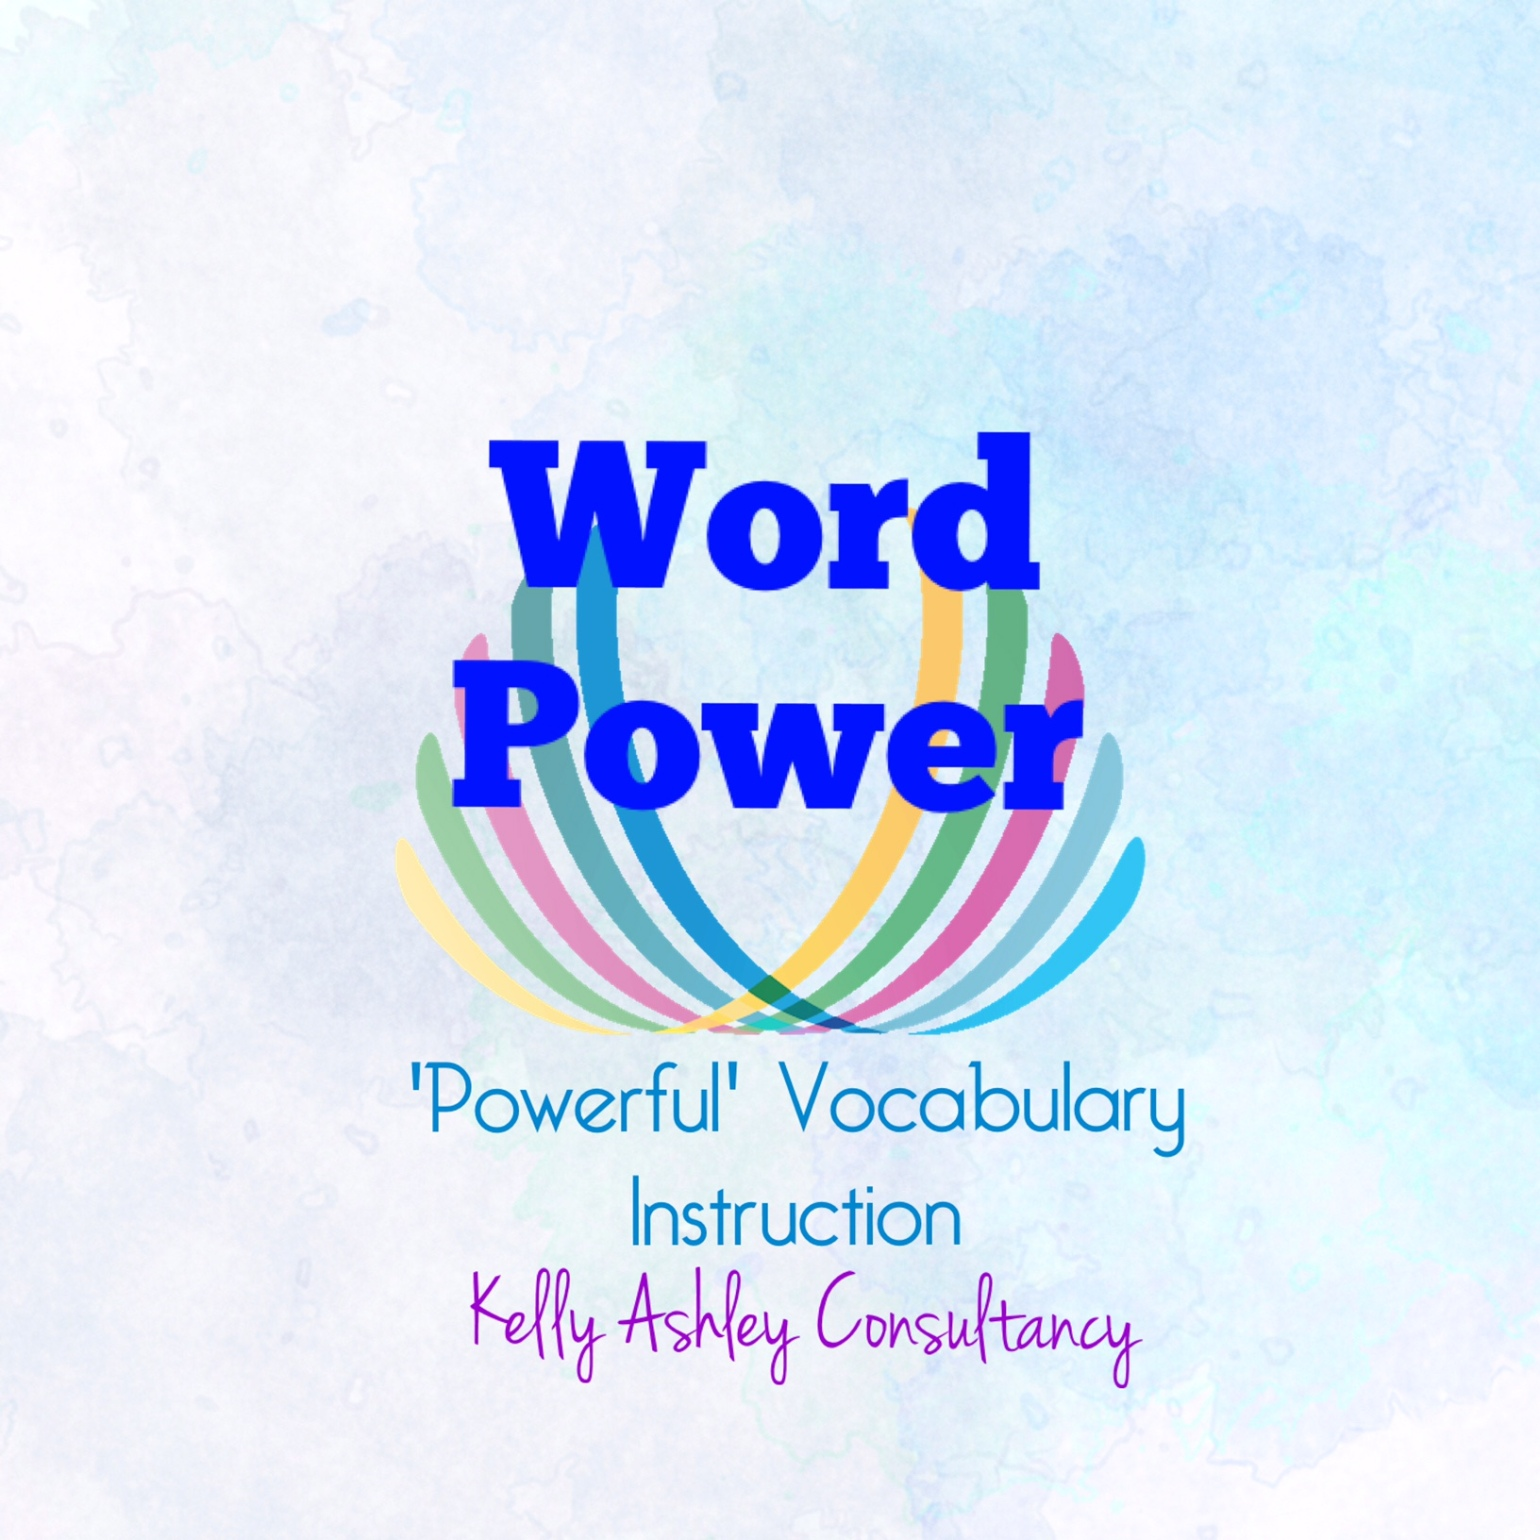 Word Power logo